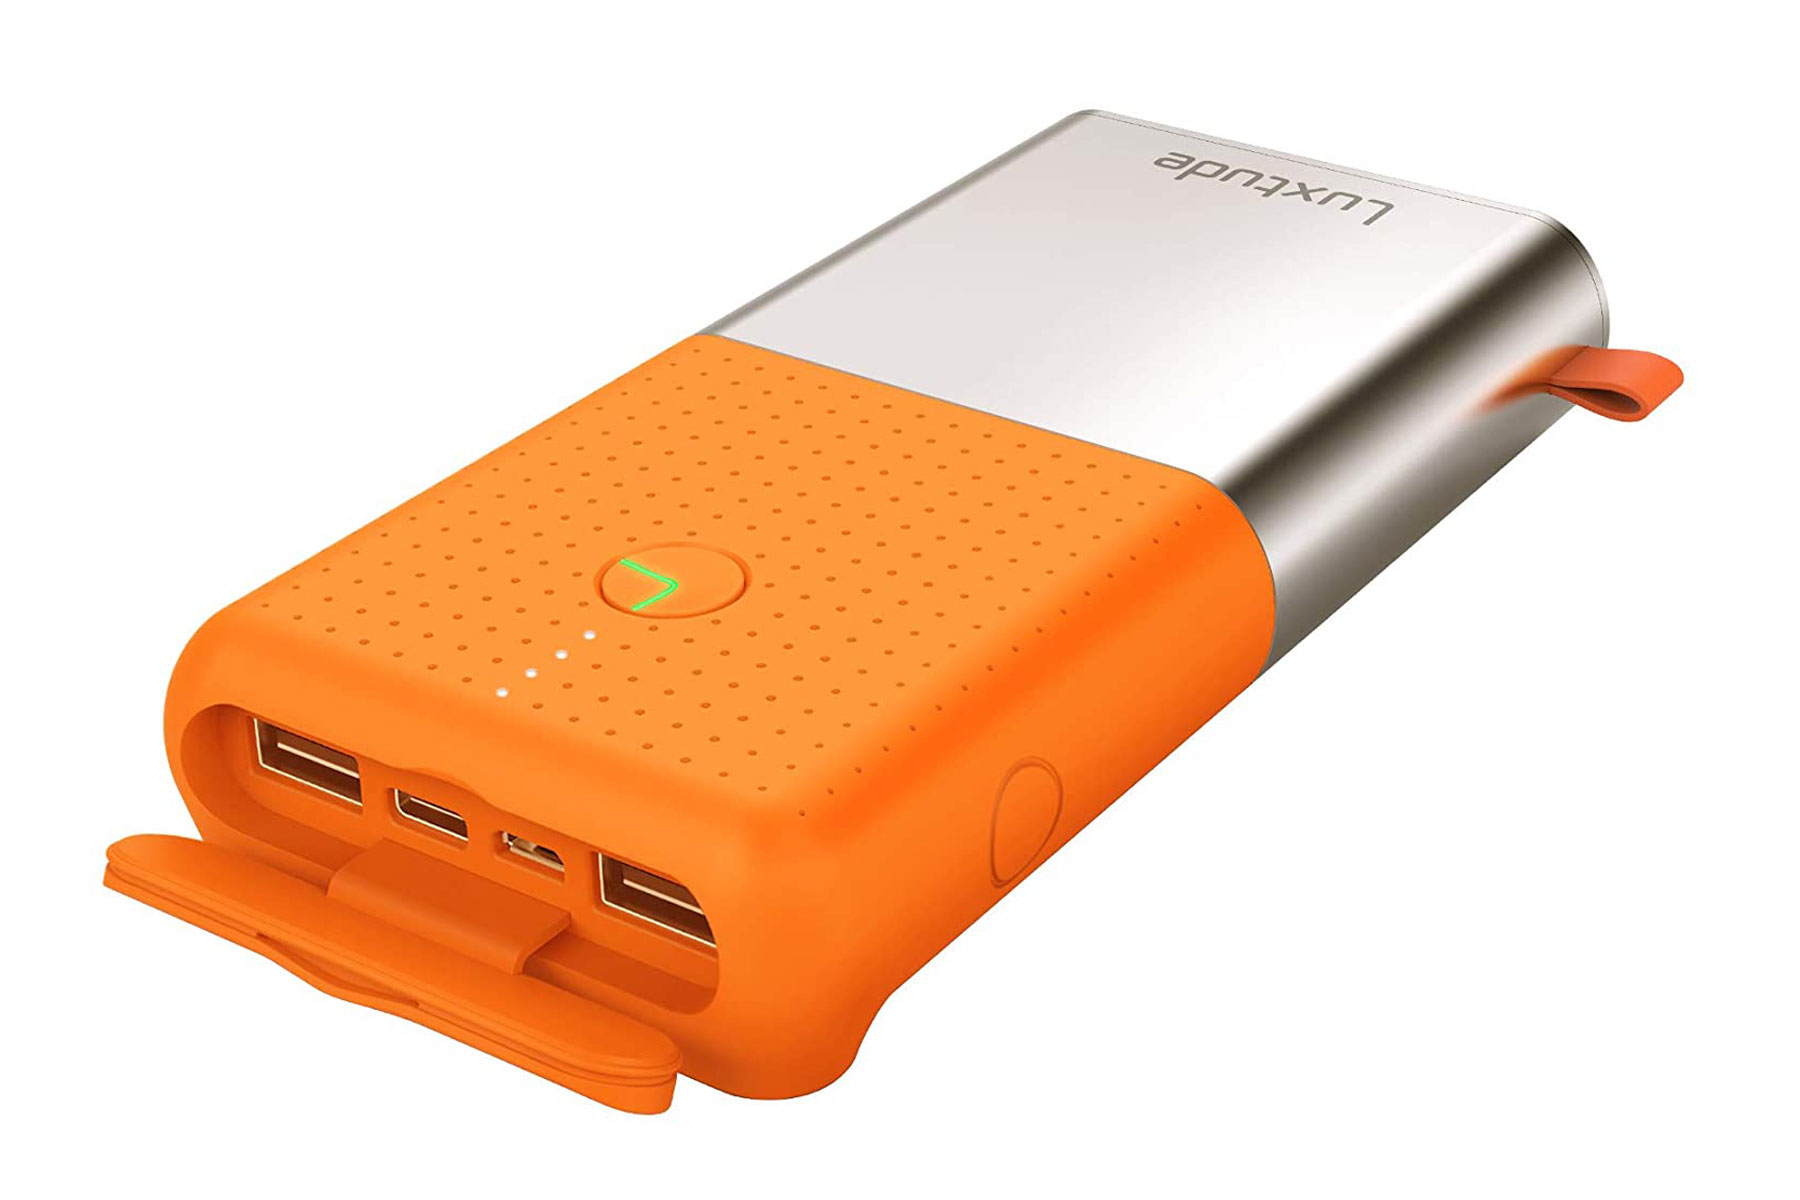 Portable charger/power bank